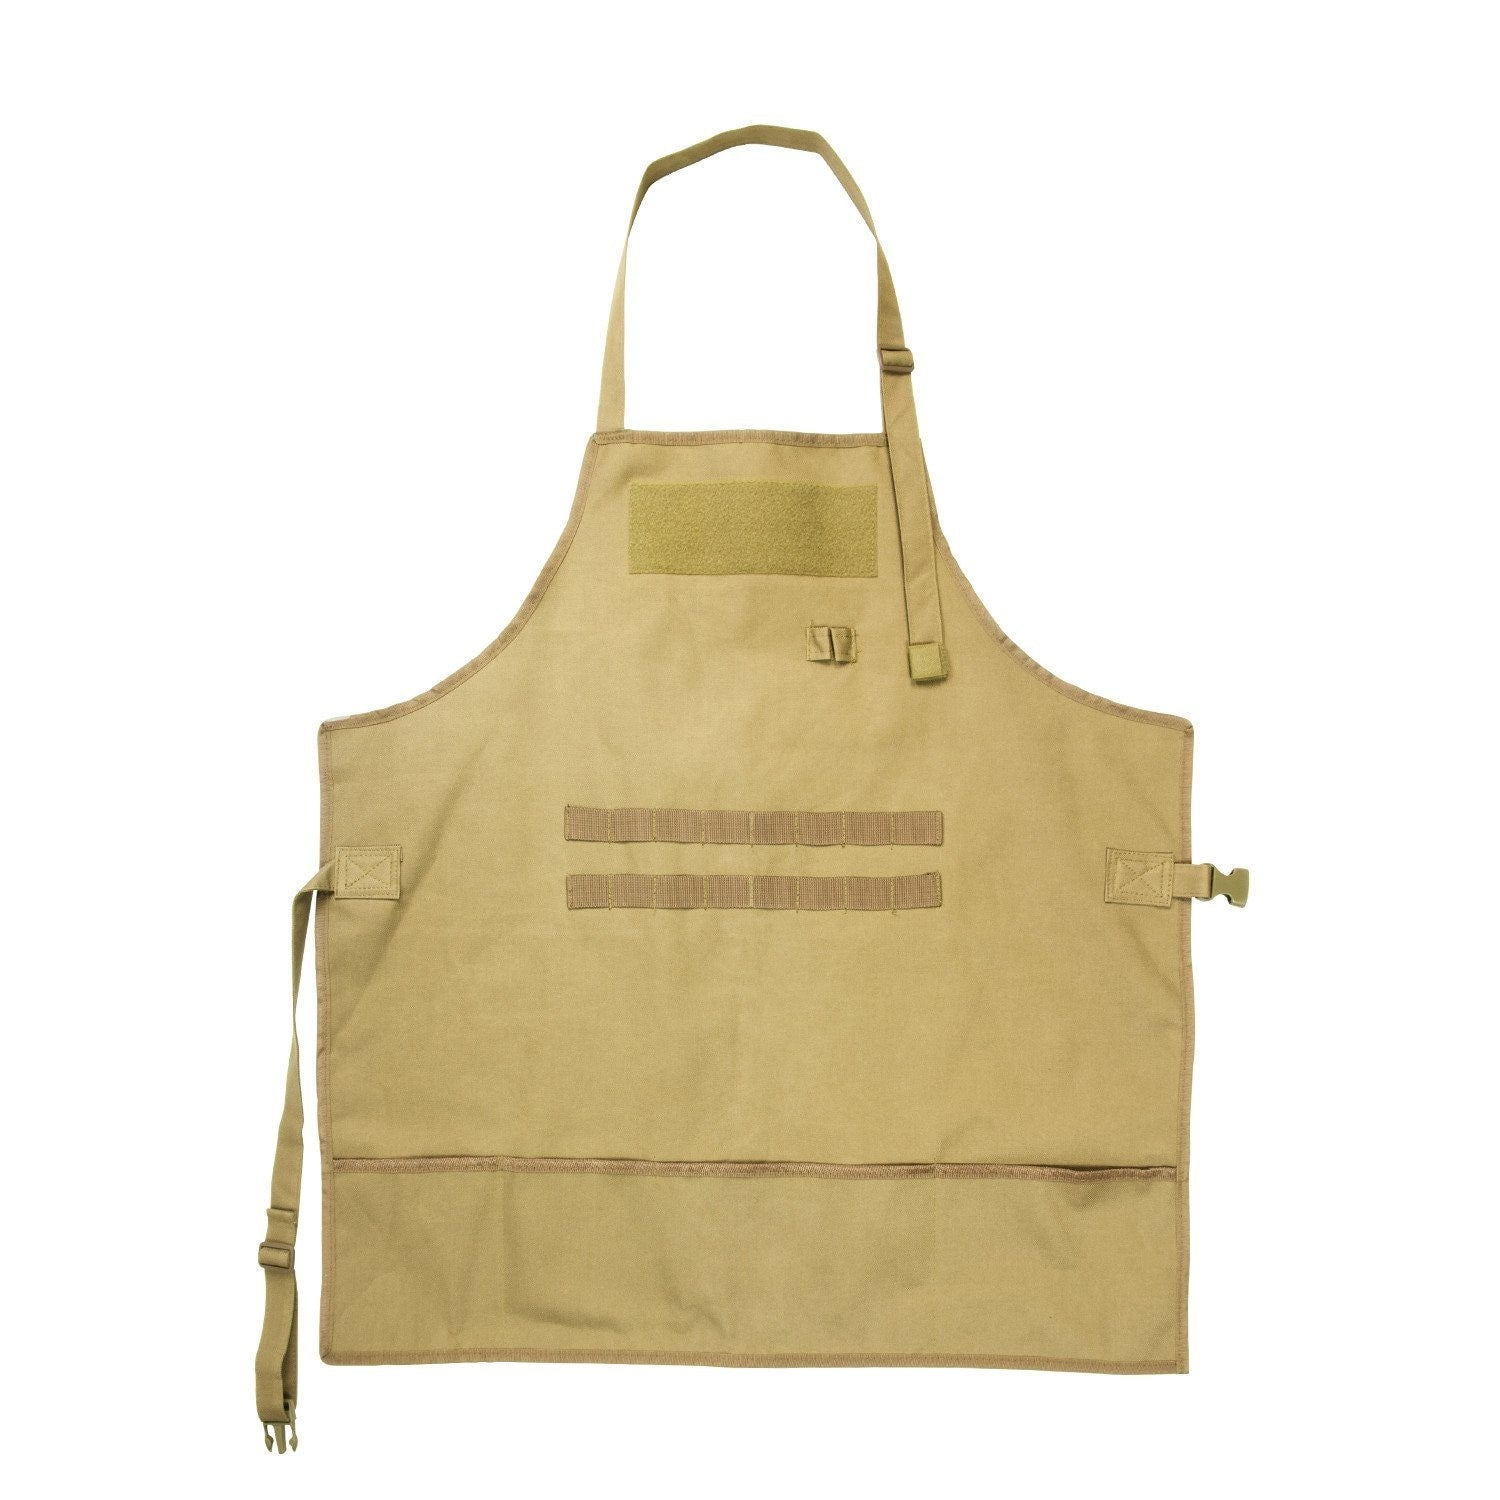 Tactical Apron - Tan - Accessories/tools - Vism - Colonel Mustard